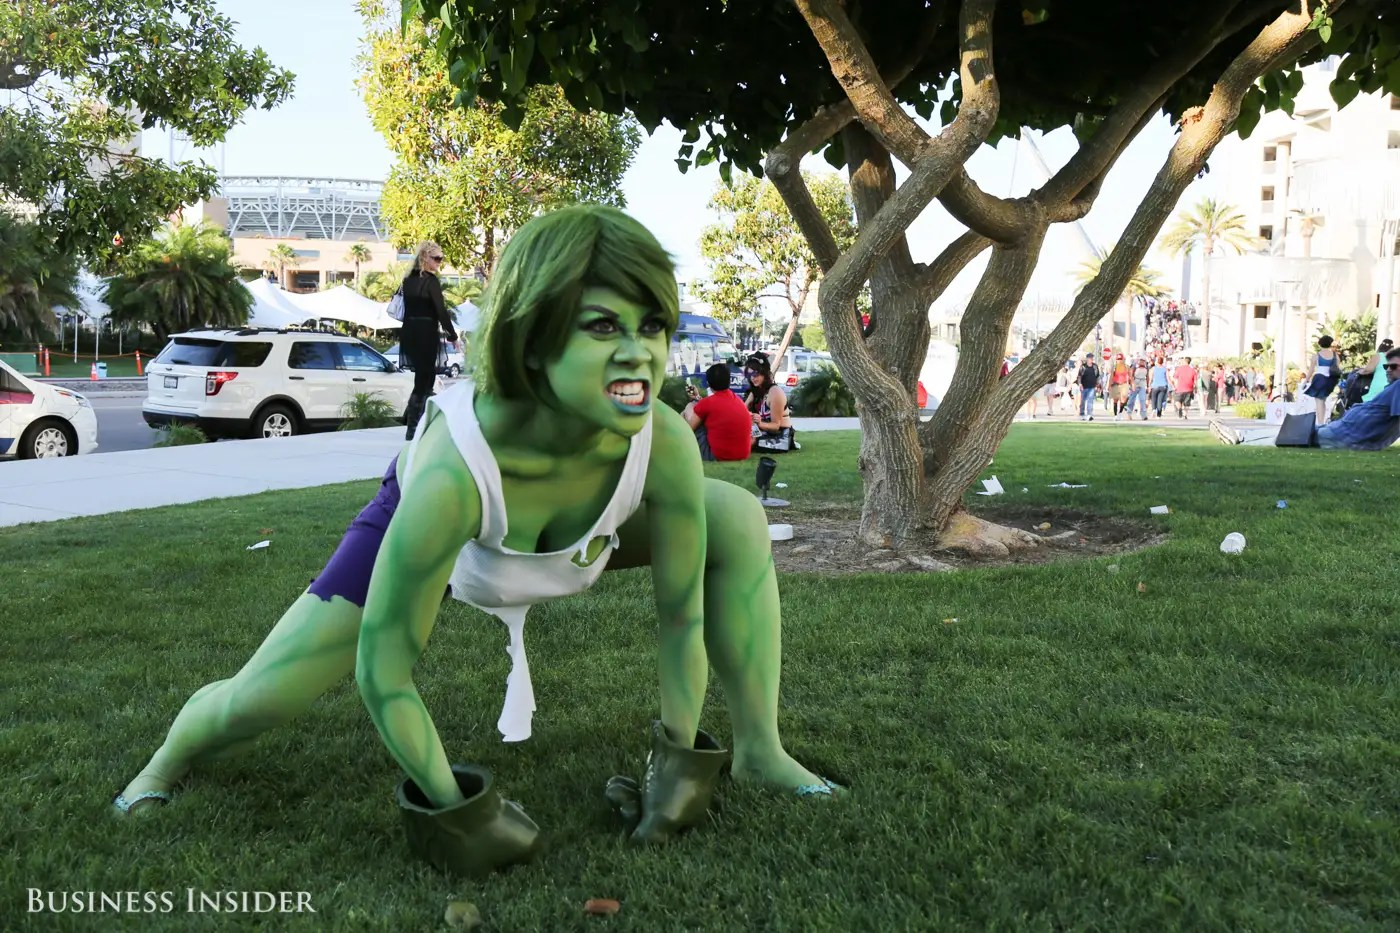 Looks as if Iron Man made this femme Hulk angry.